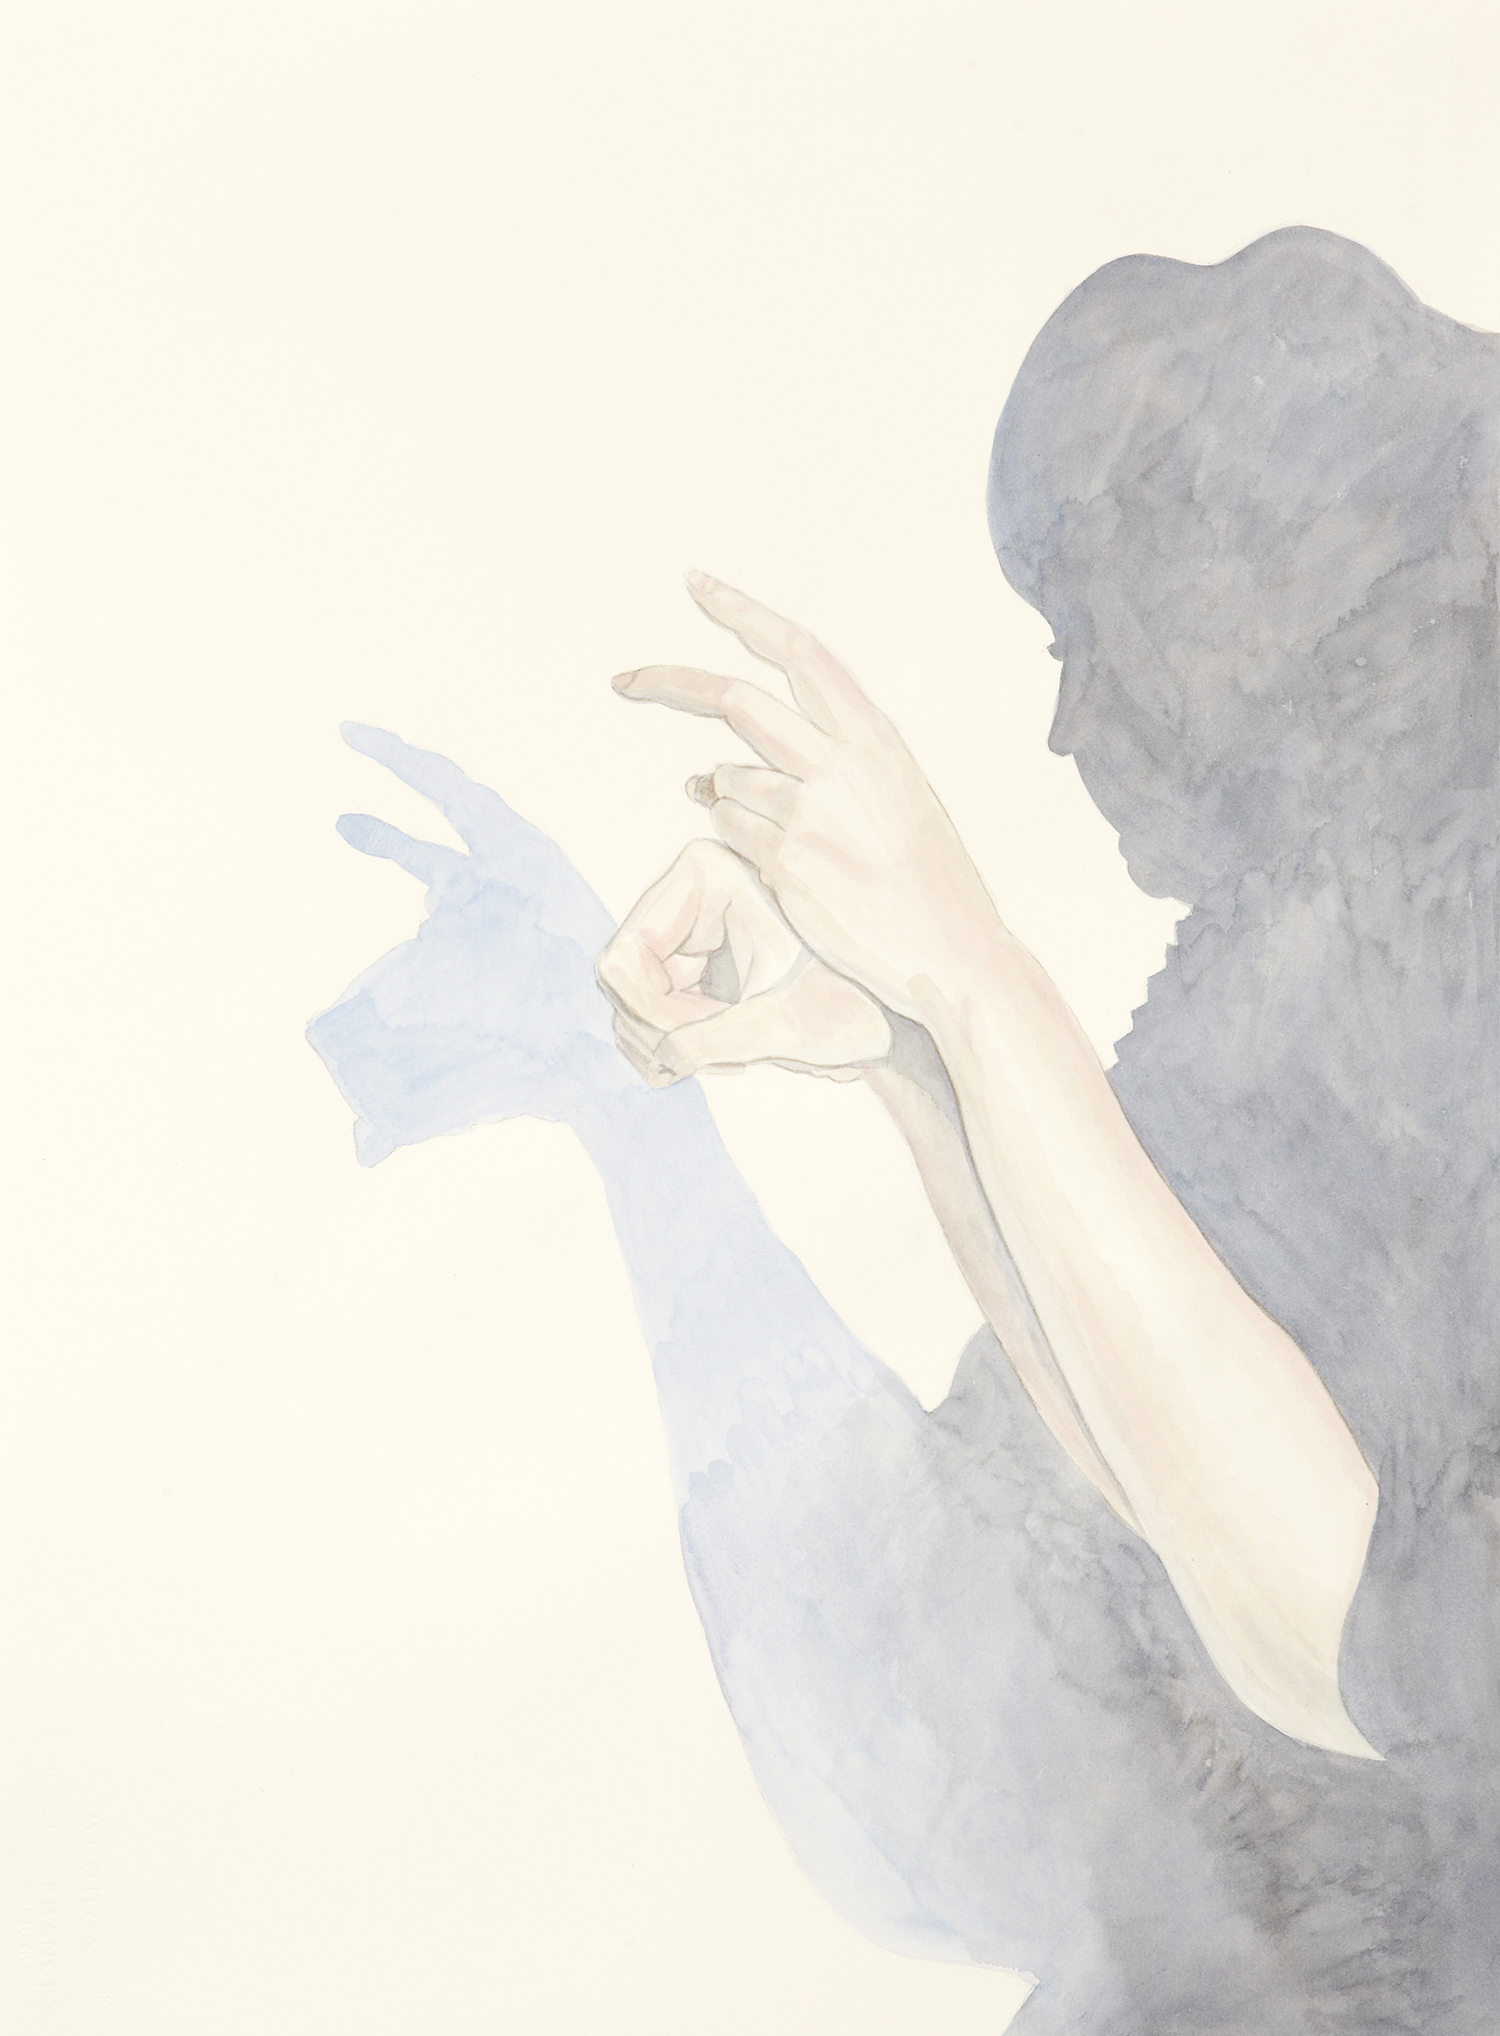 One, 2011, Watercolour on paper, 56 x 76 cm, Photo: Sam Scoufos